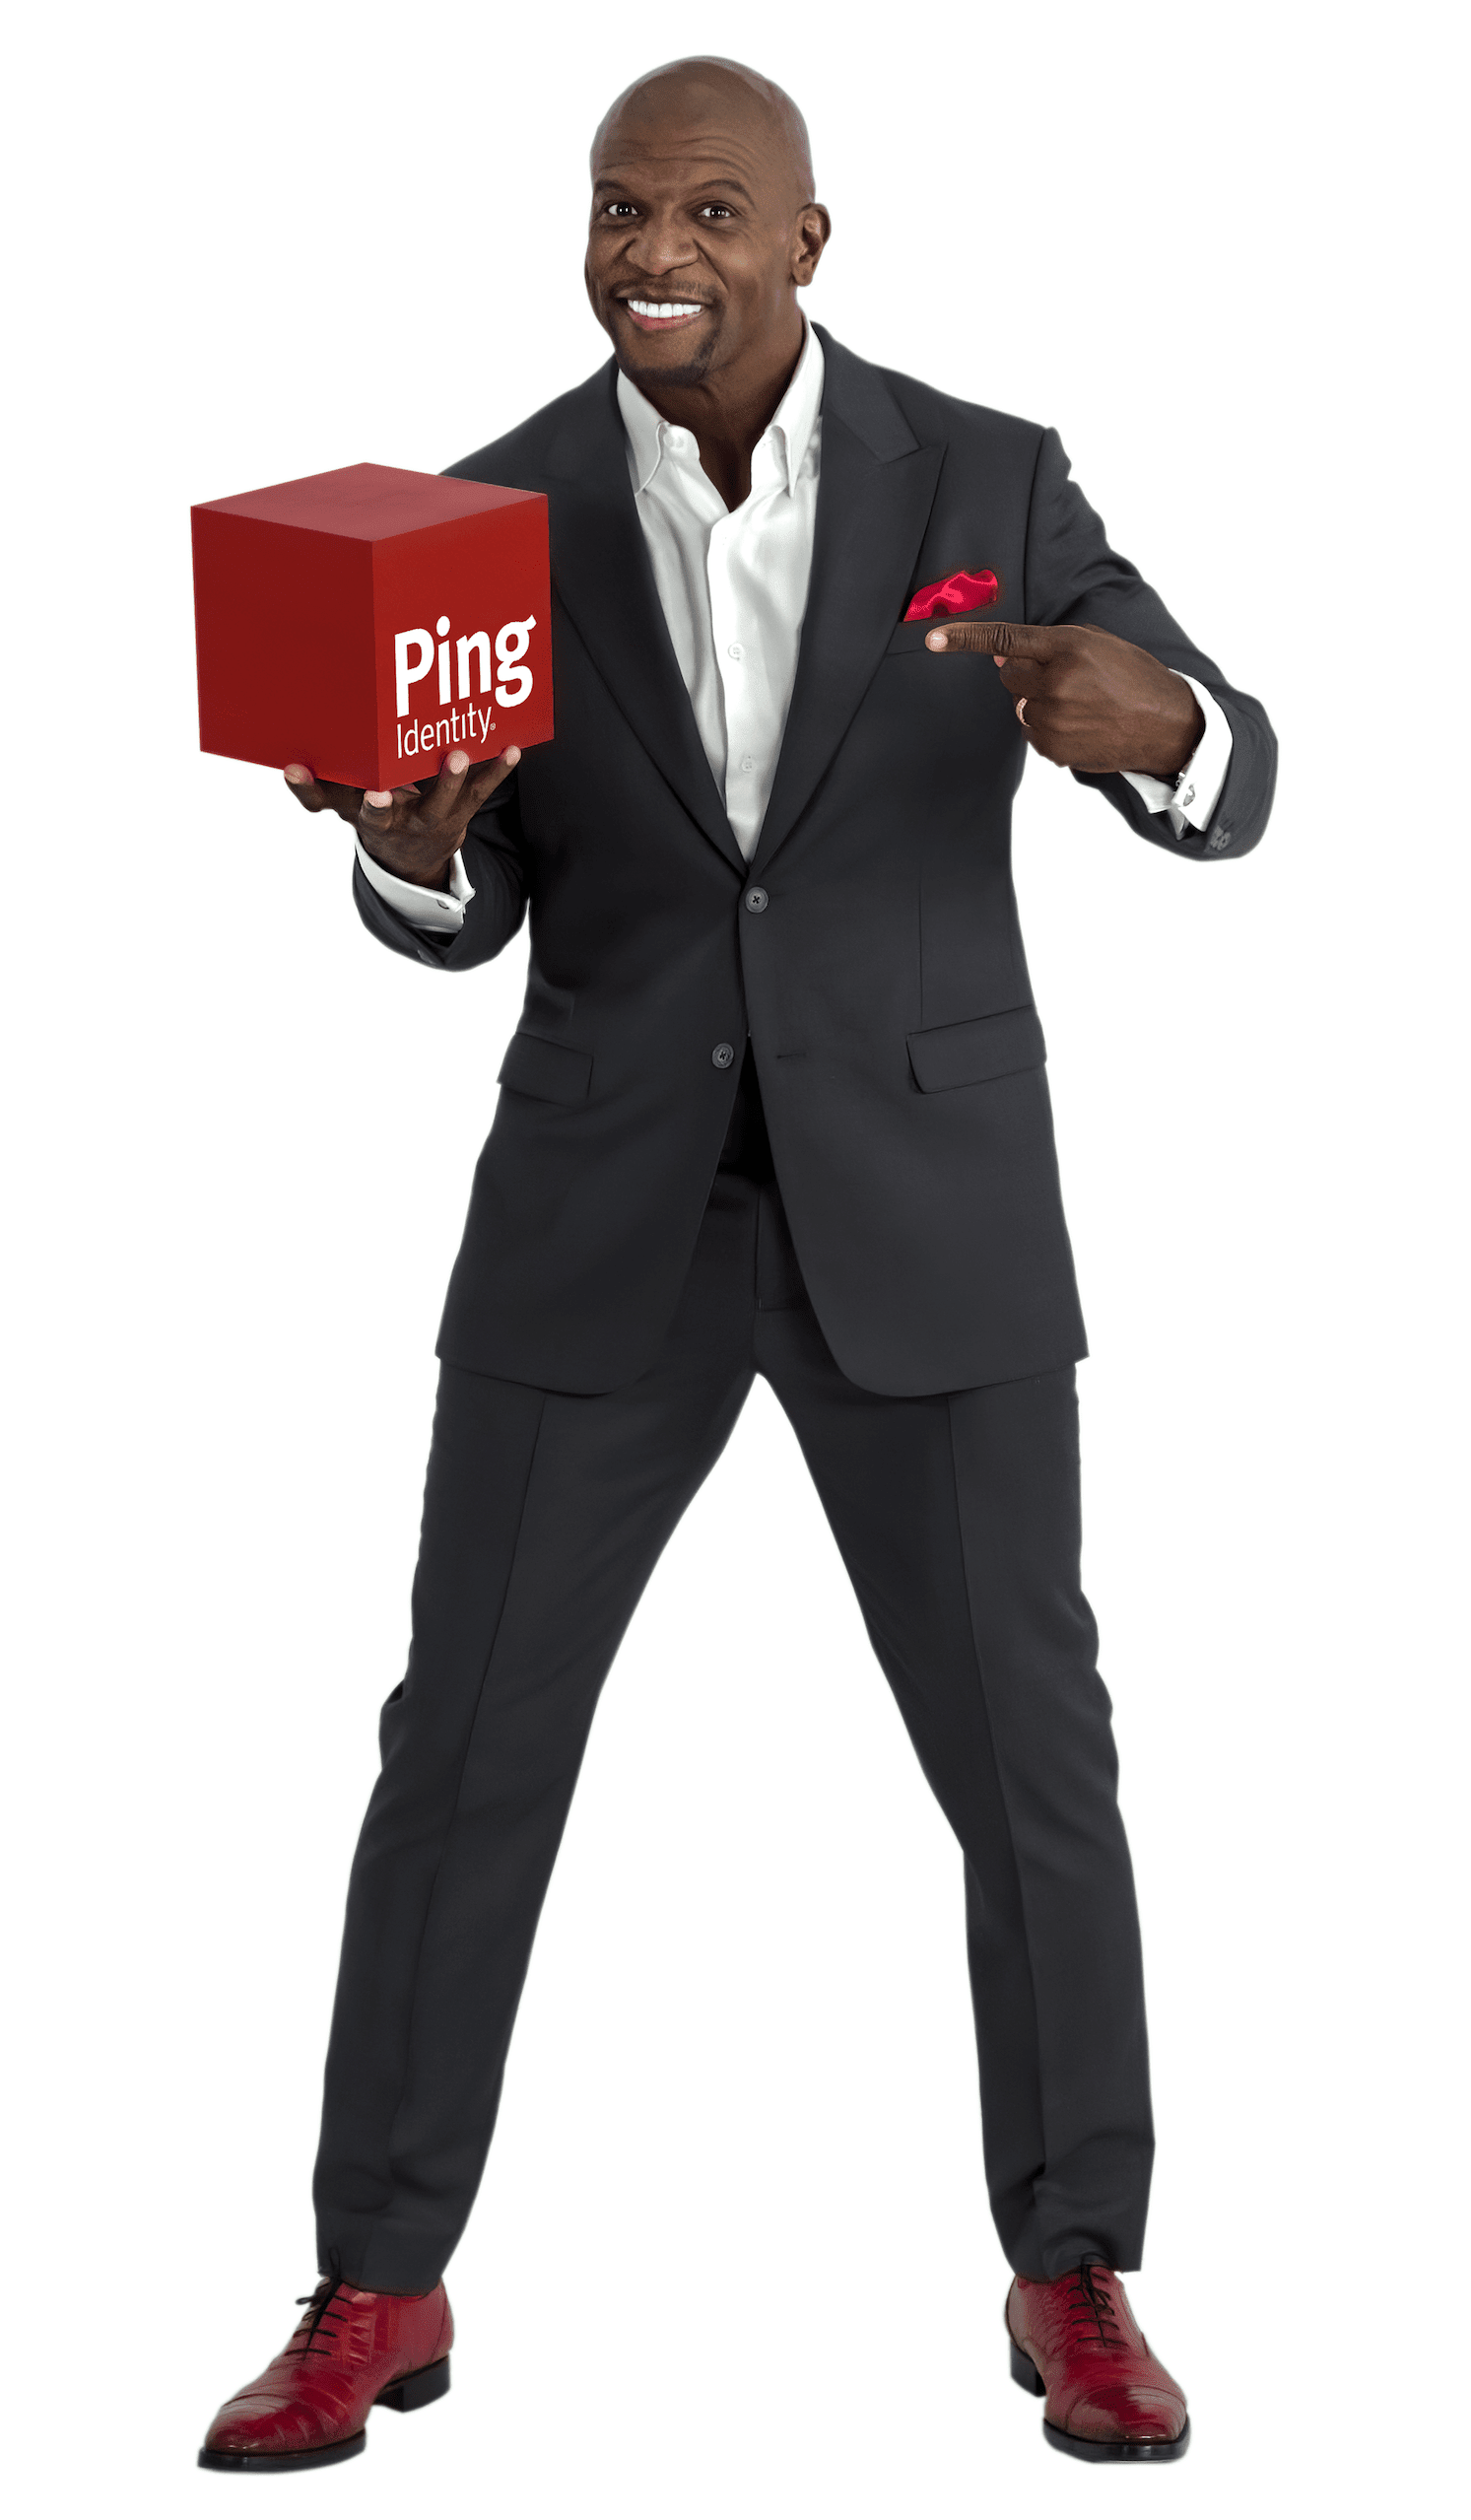 Terry Crews with Ping Identity box